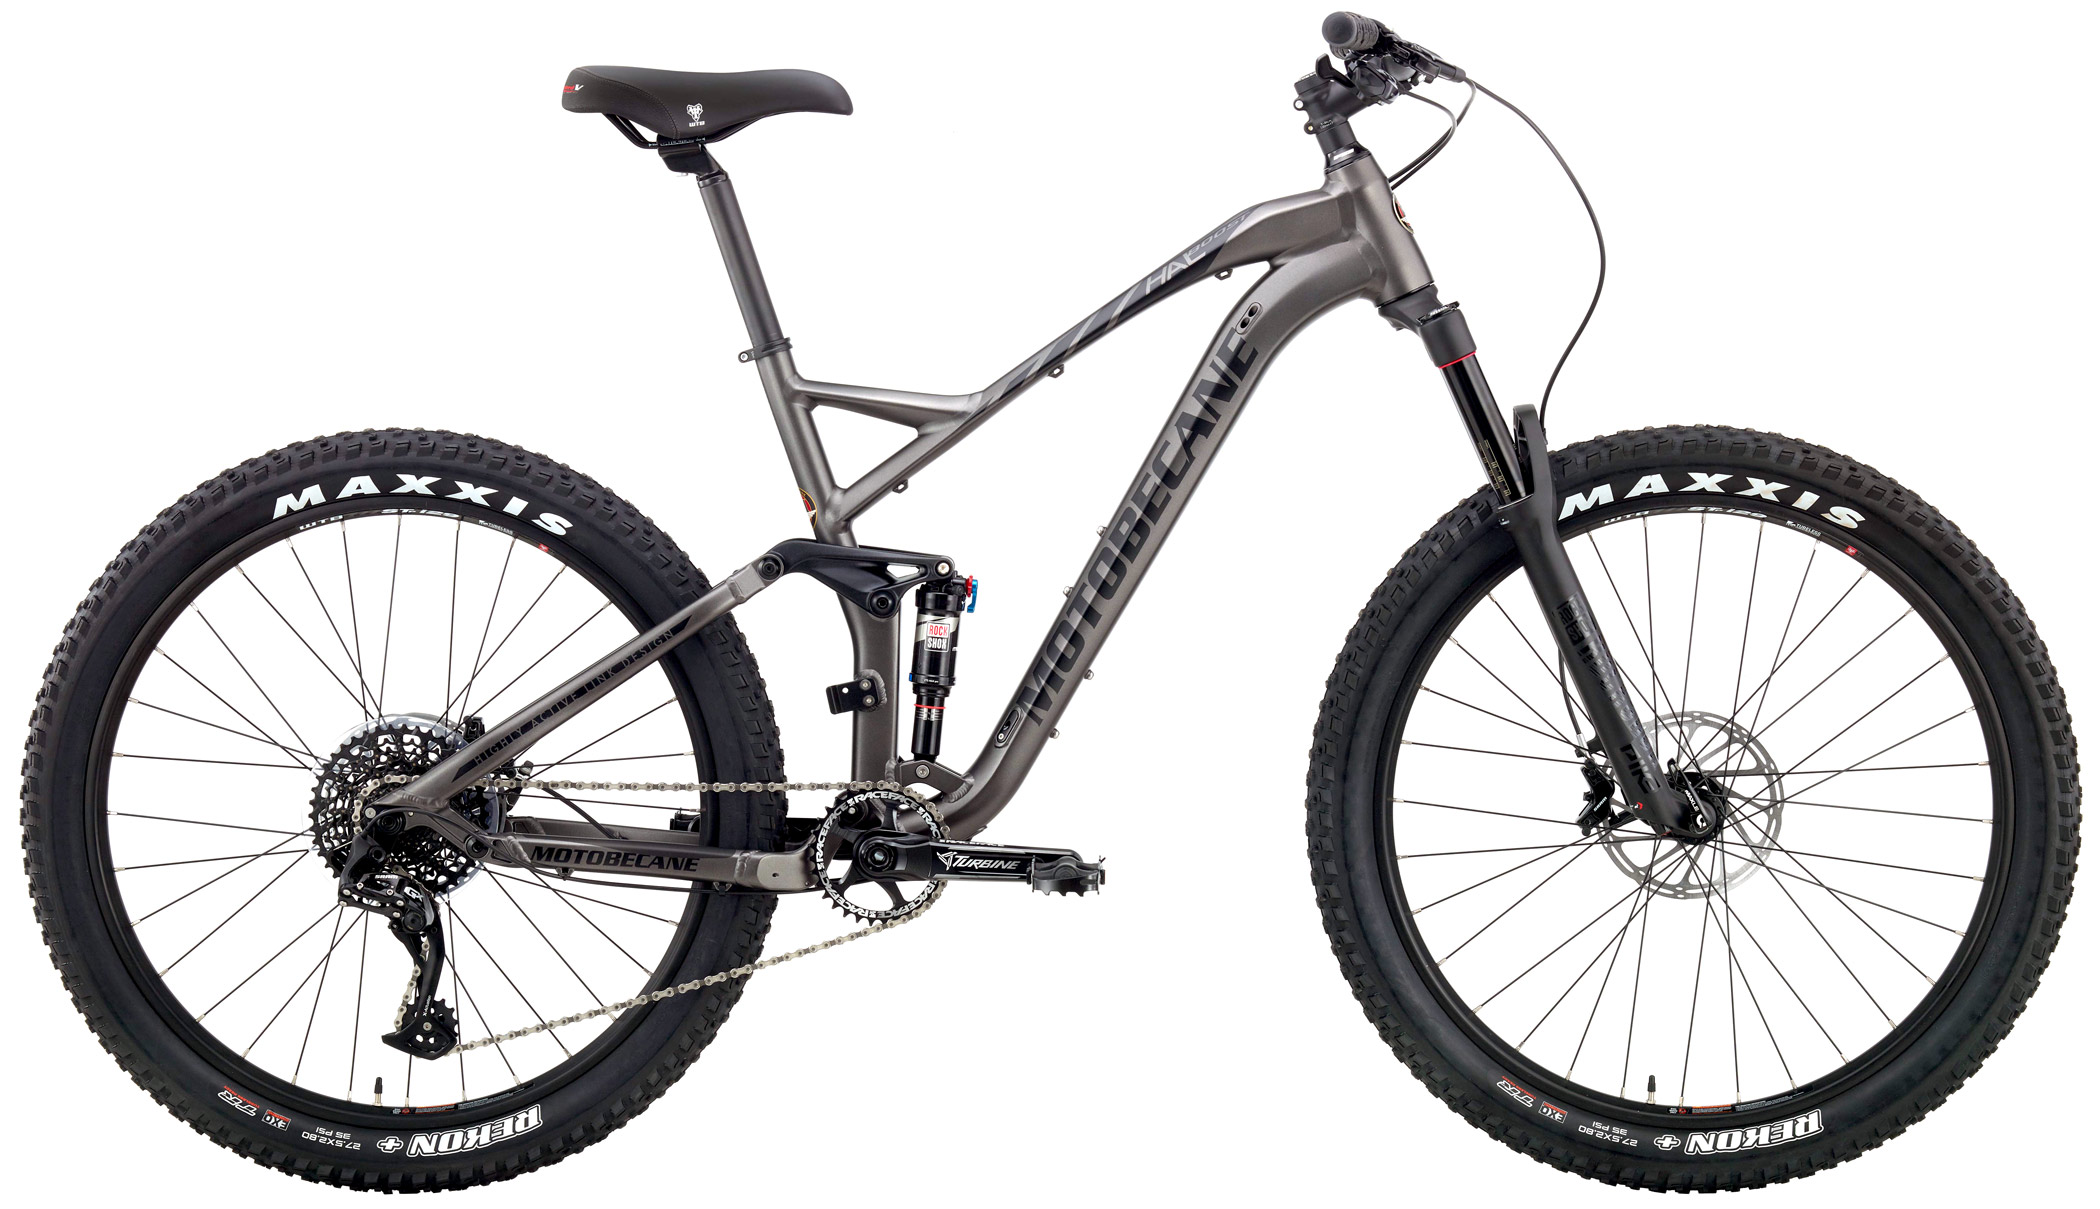 HAL BOOST ELITE 27.5 PLUS - BOOST™ SPACING W/ SRAM & ROCKSHOX